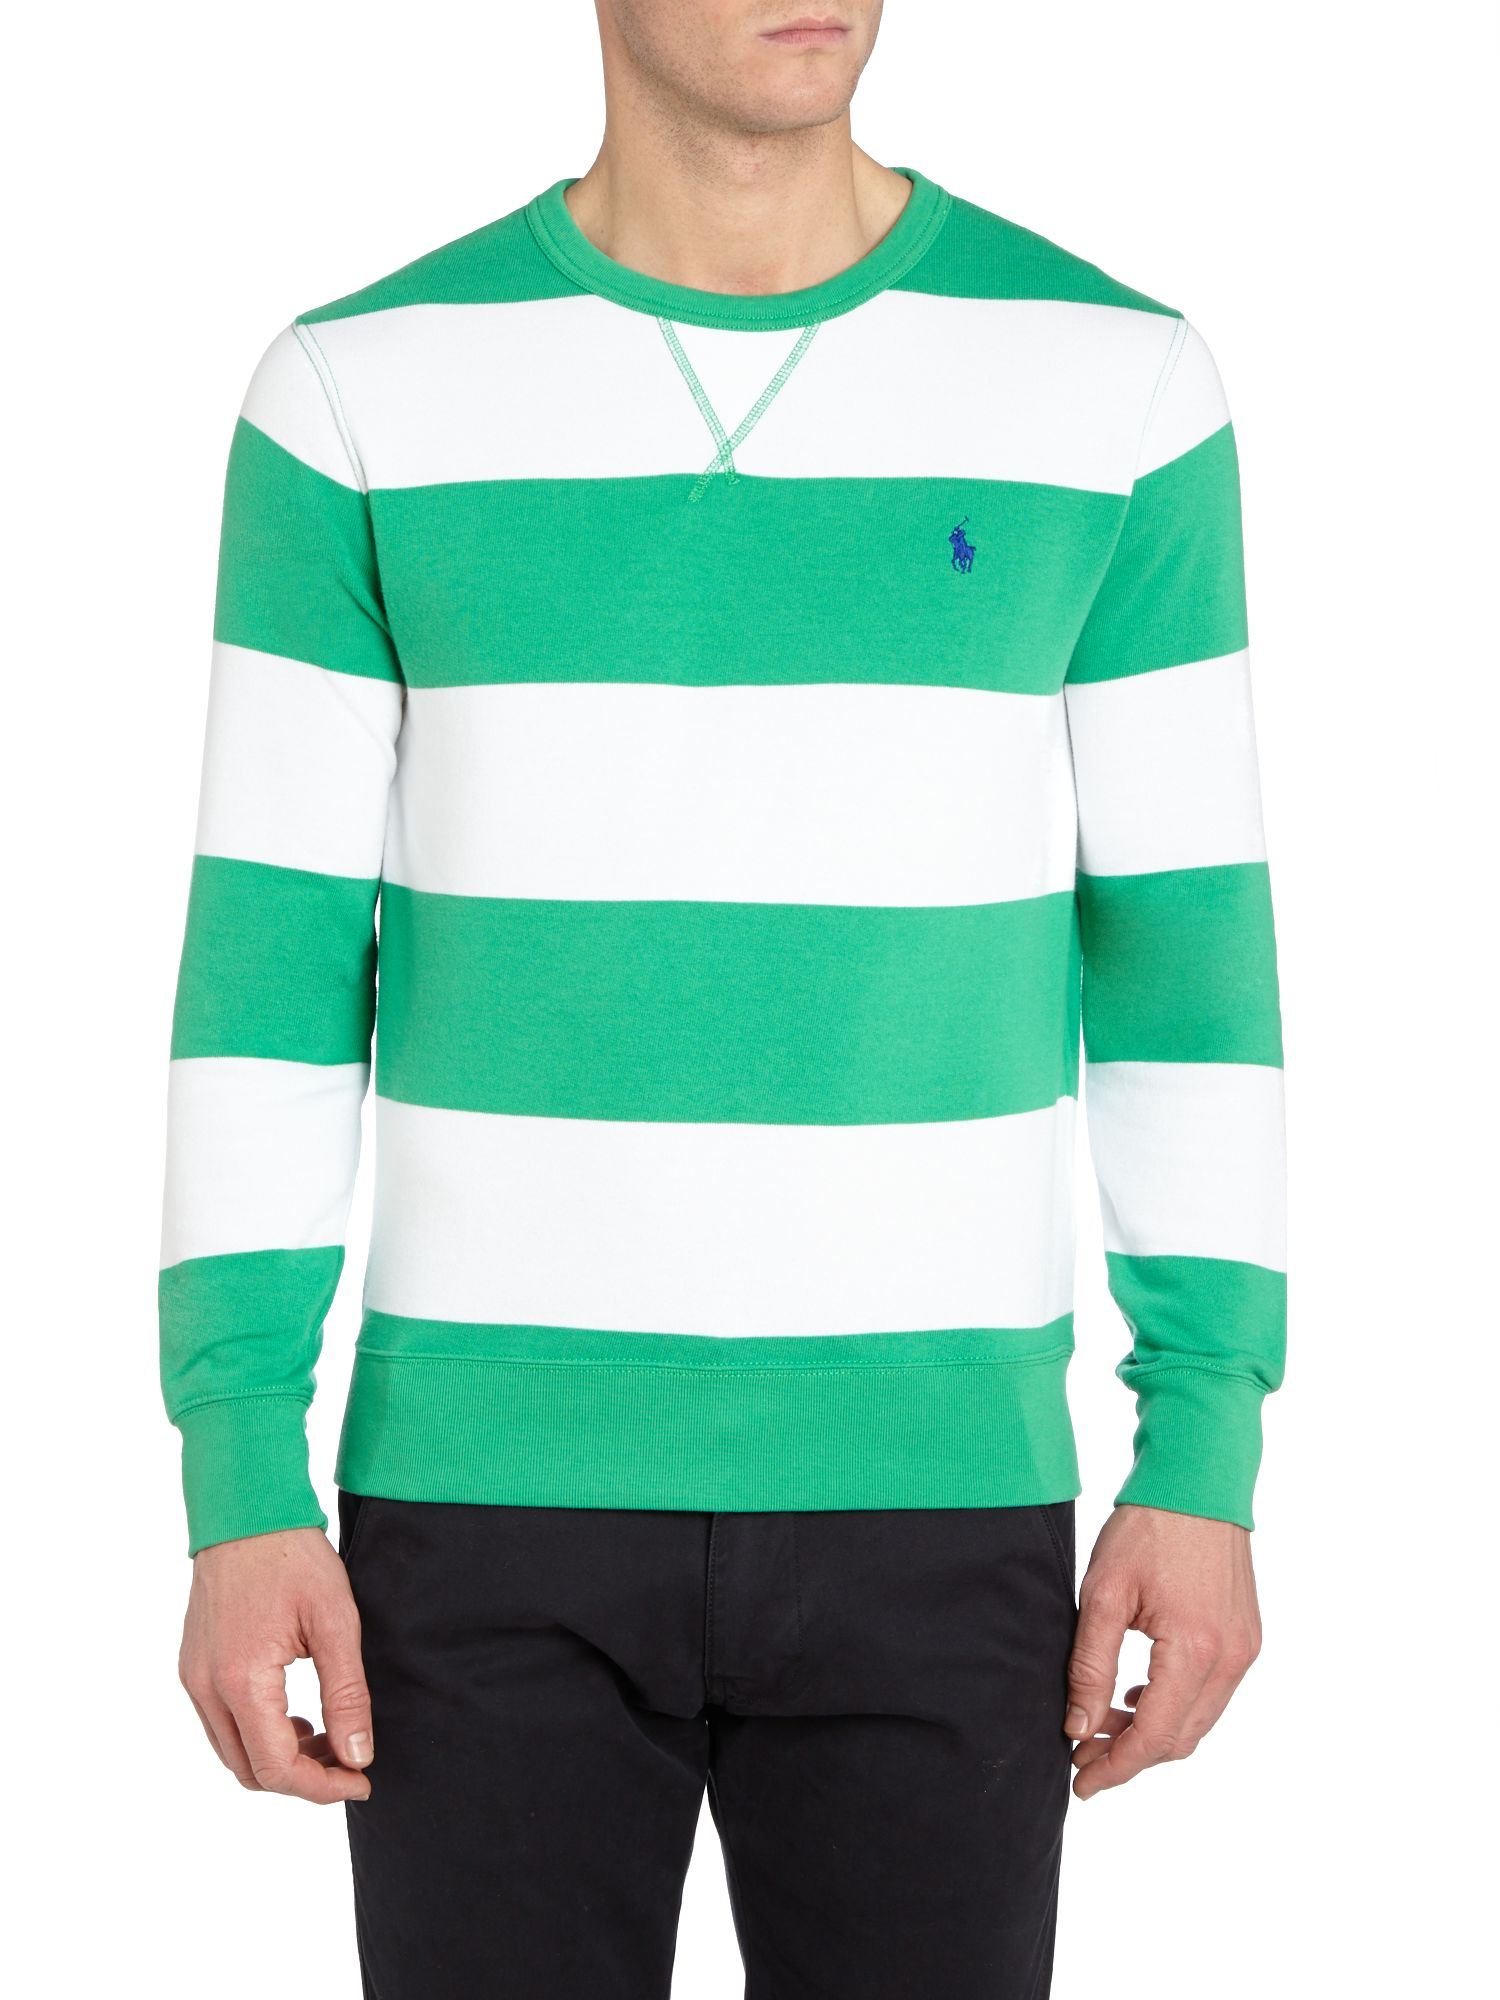 Atlantic terry striped crew neck sweatshirt